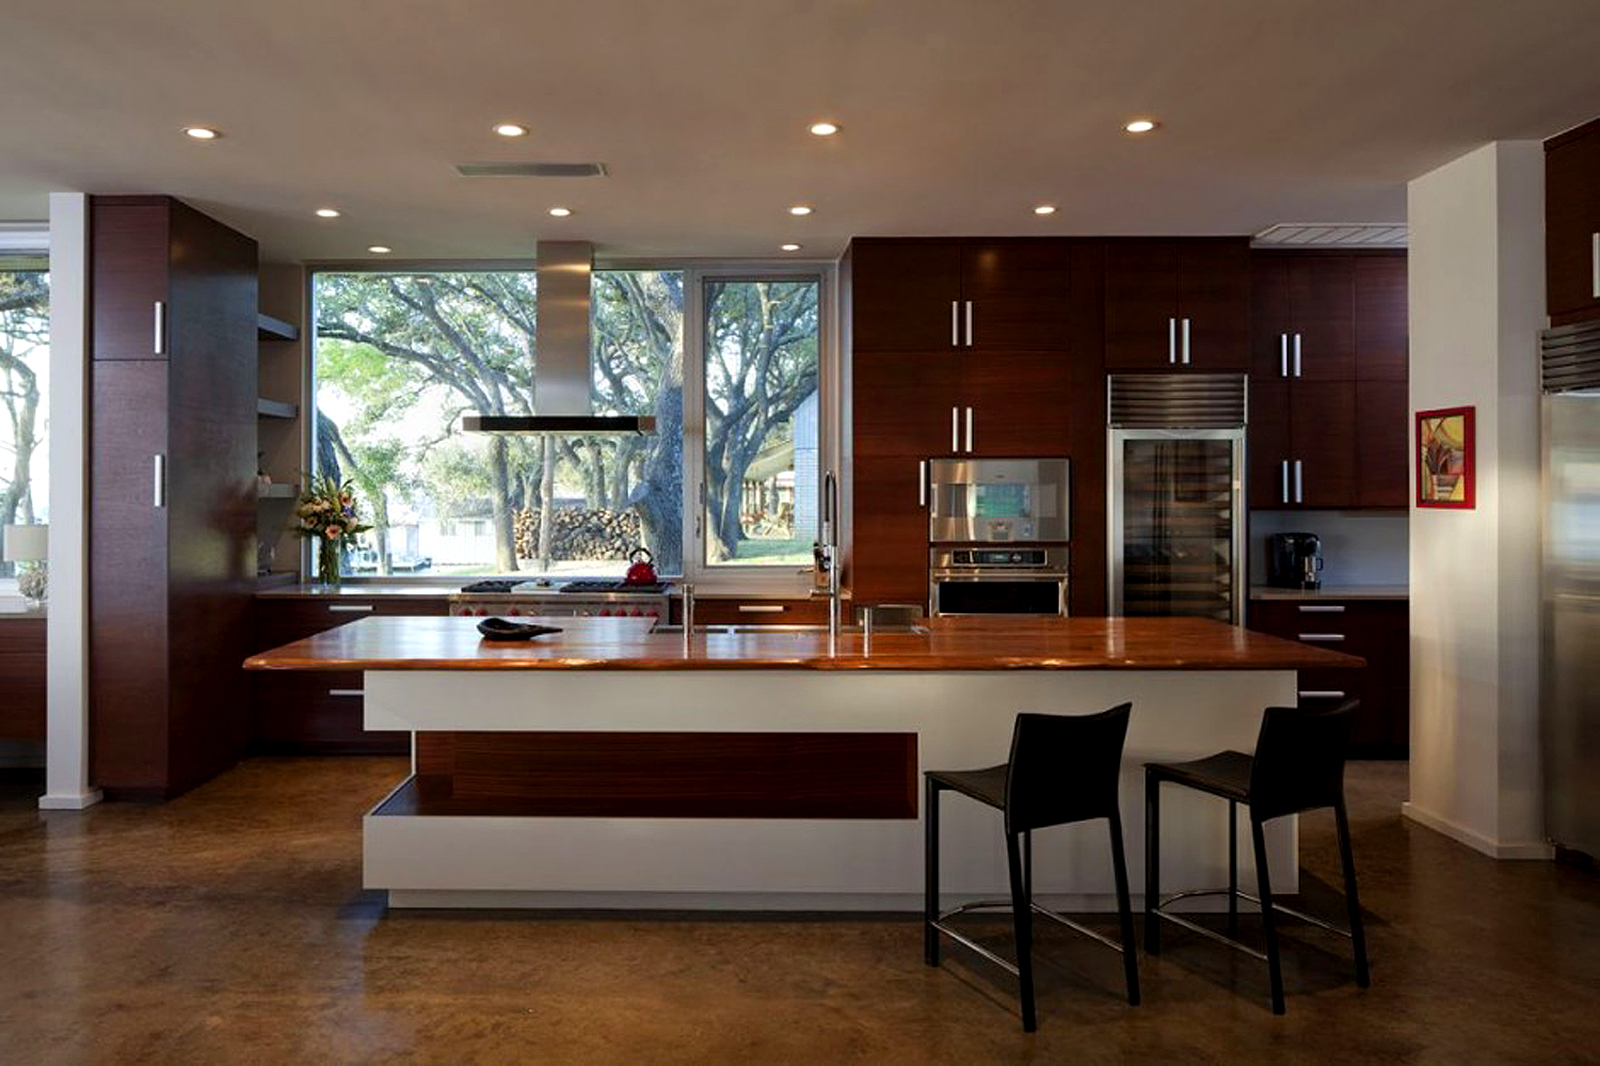 modern-kitchen-cabinets-chicago-as-kitchen-cabinet-ideas-as-the-artistic-ideas-the-inspiration-room-to-renovation-Kitchen-you-32